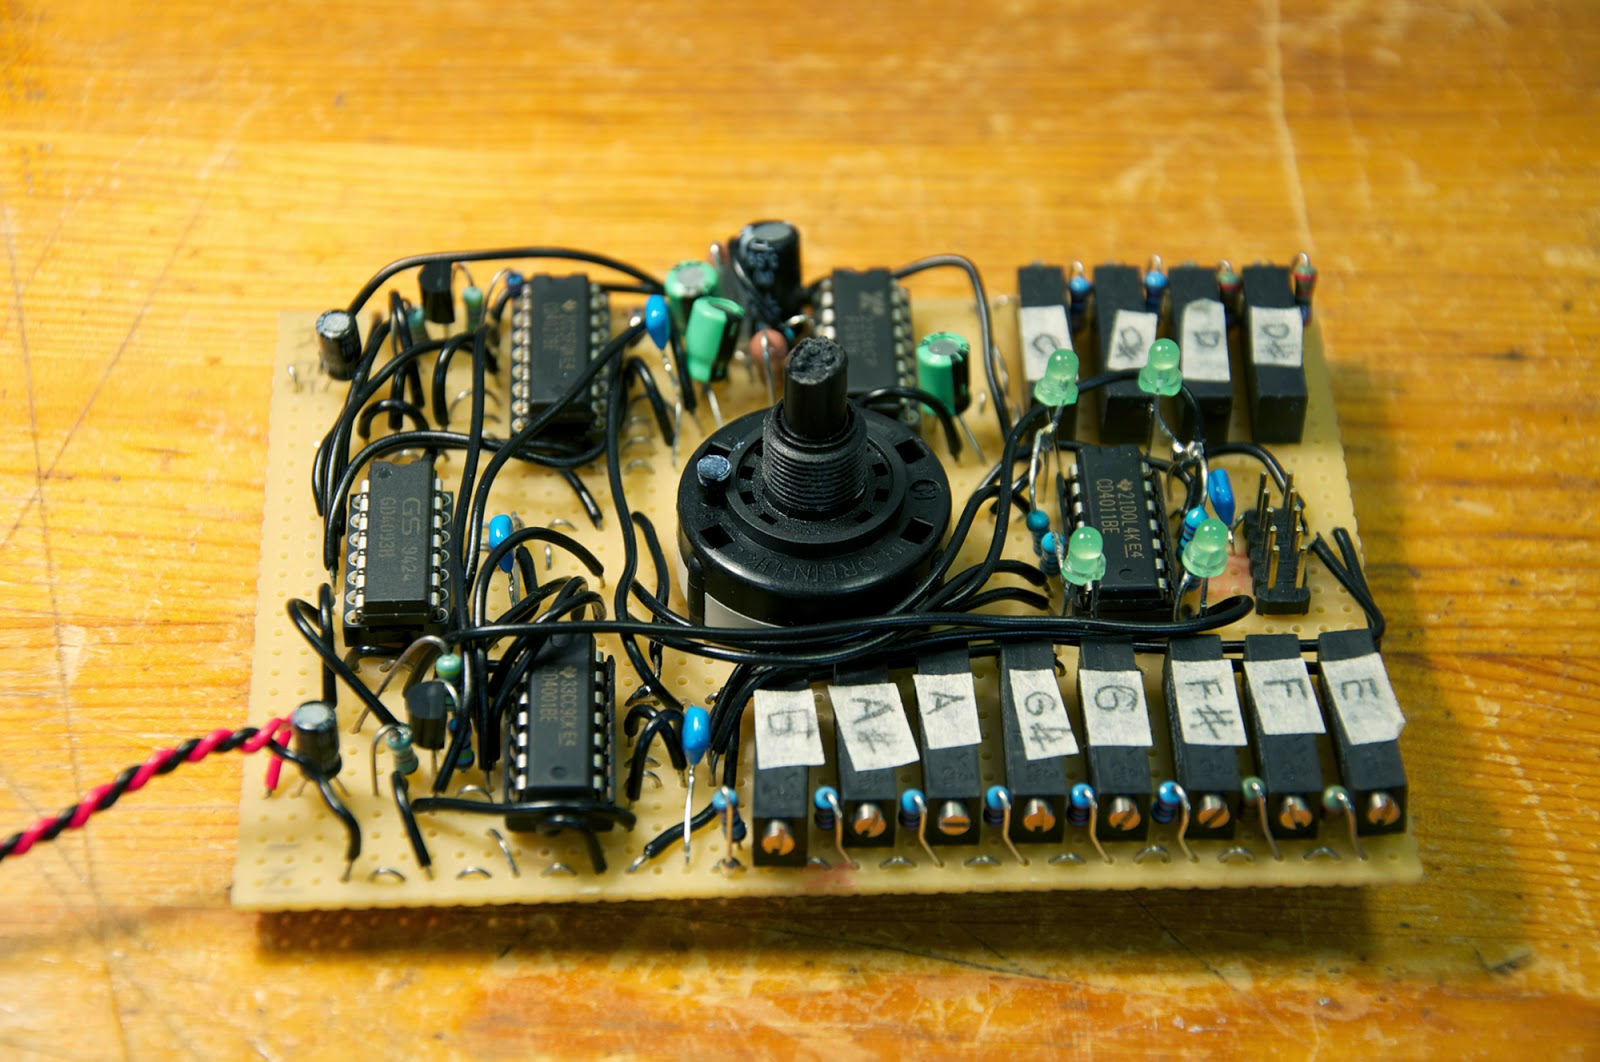 Sigma 2014 Variable Gain Amplifier Circuit Diagram Tradeoficcom Pictured Is The Fk50240 Chip In Its Own Plastic Box And Old Version Of This